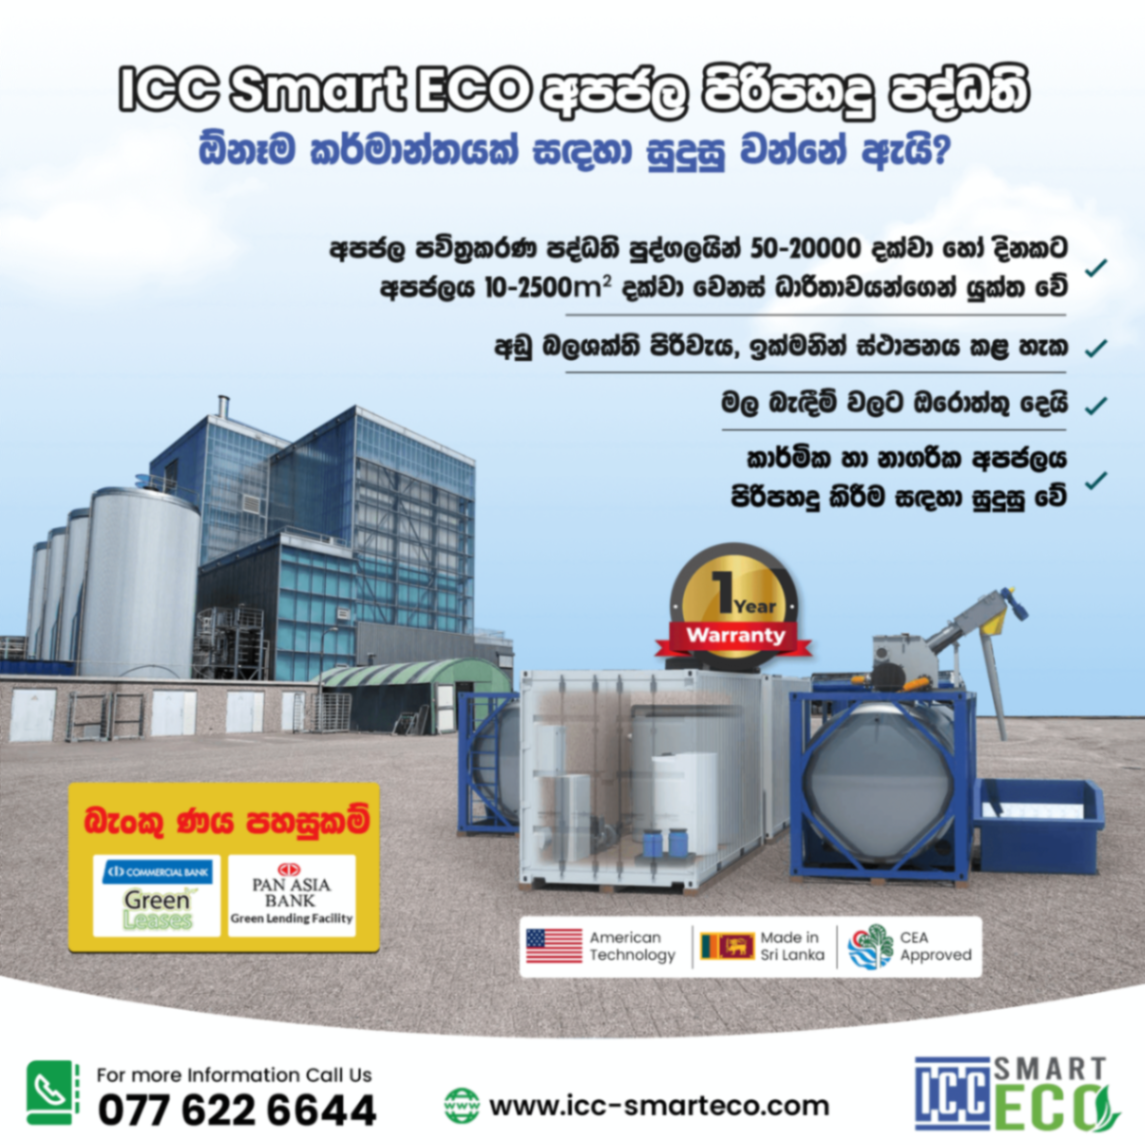 The ICC Smart Eco Wastewater Treatment Plant is a unique, biological wastewater treatment process.